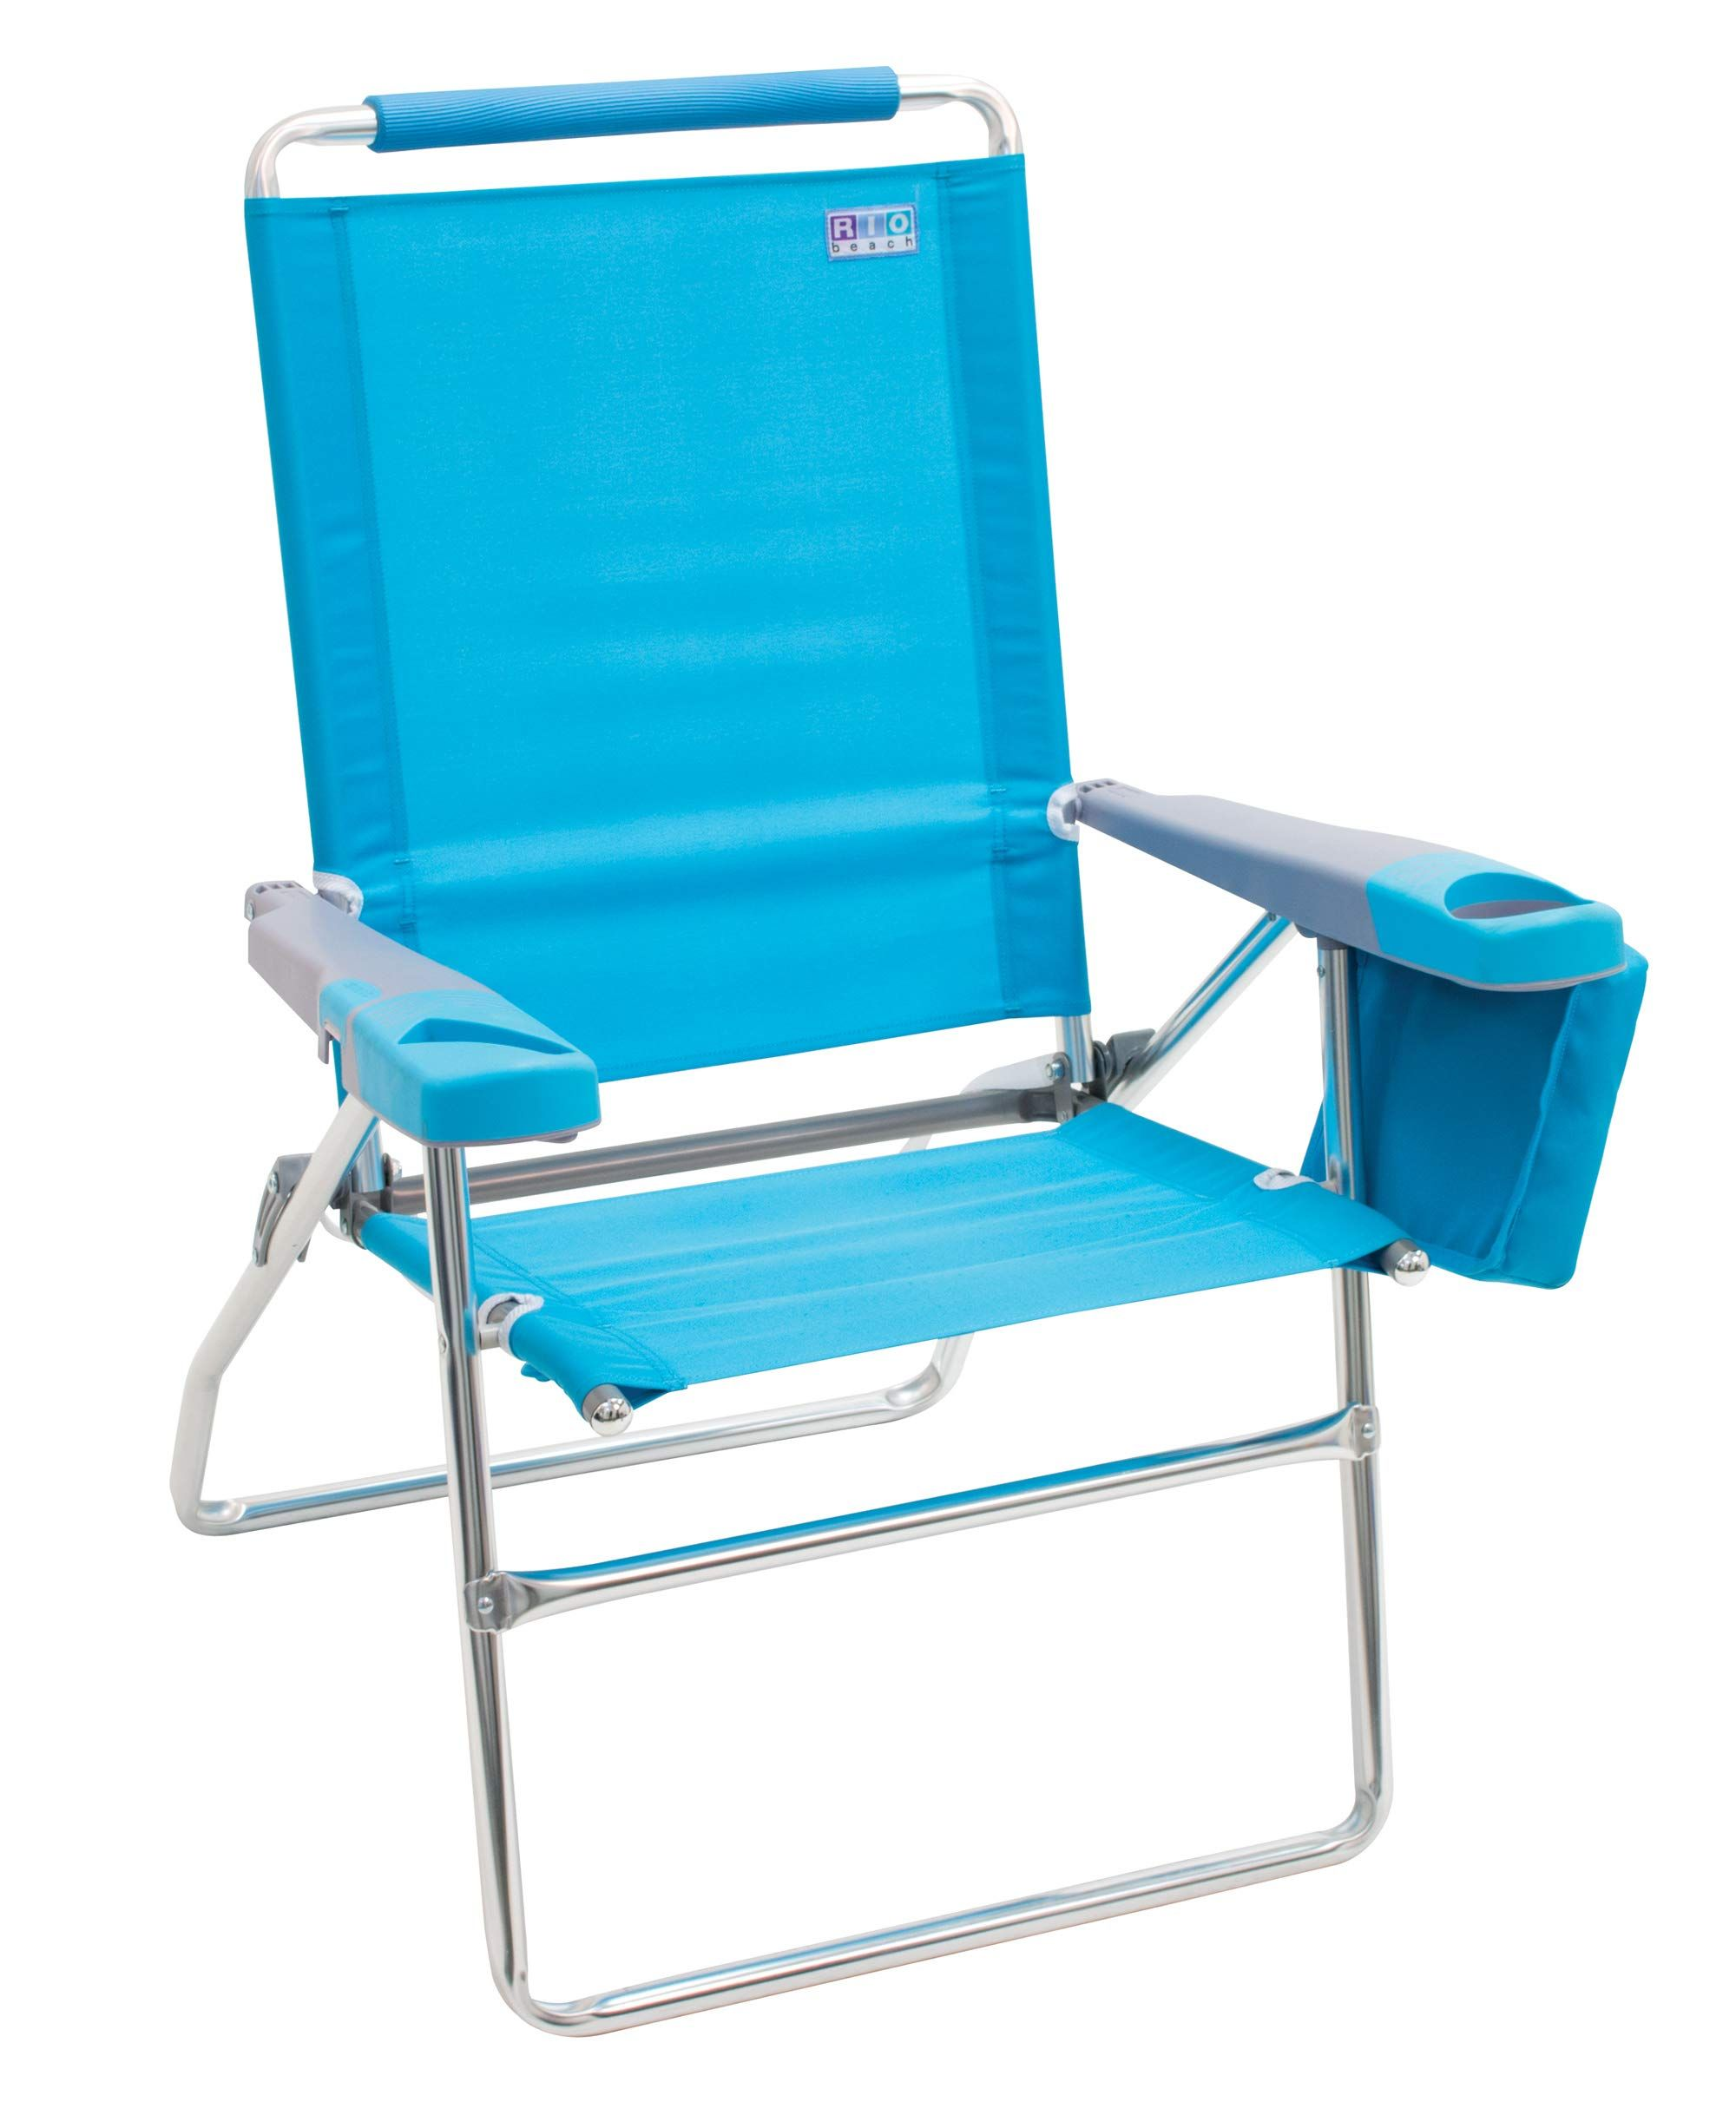 Rio Beach 17 Quot Extended Height 4 Position Folding Beach Chair Teal Folding Beach Chair Beach Chairs Beach Chairs Portable